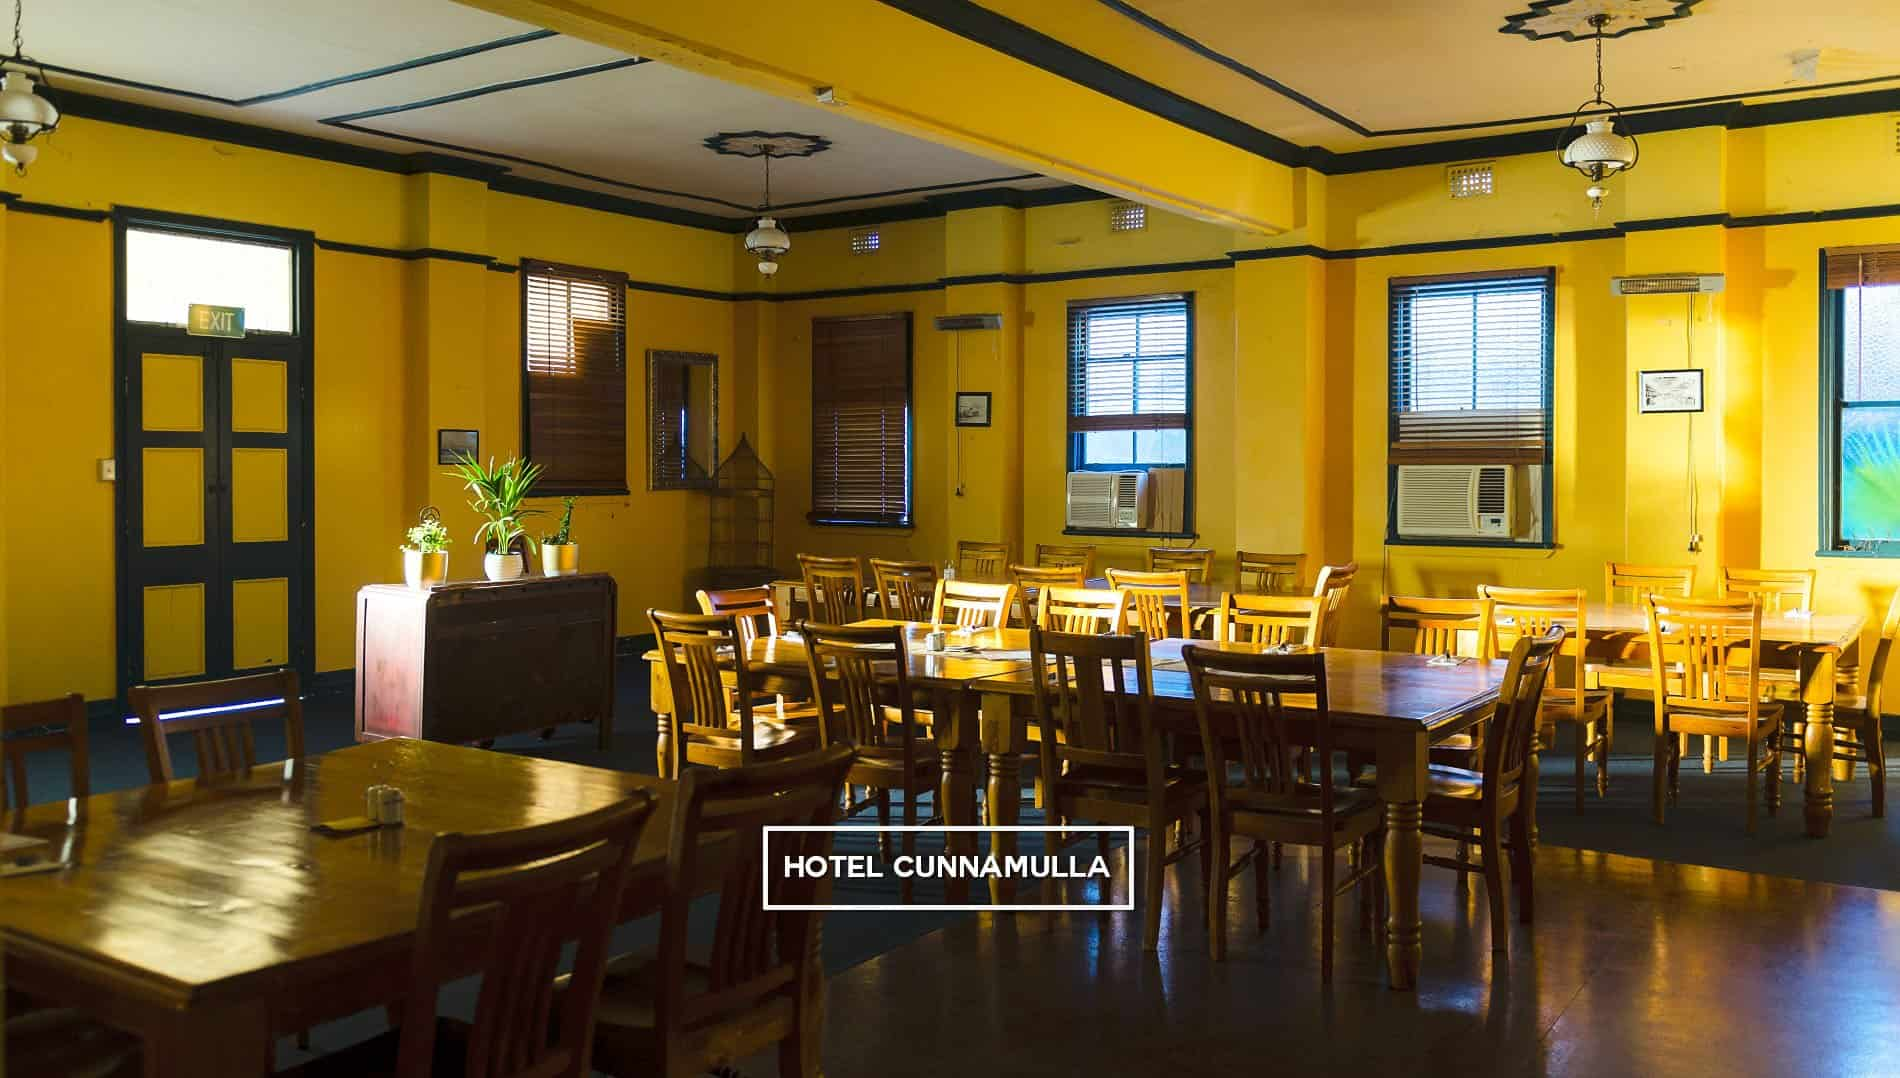 Hotel Cunnamulla Restaurant and Dining Room